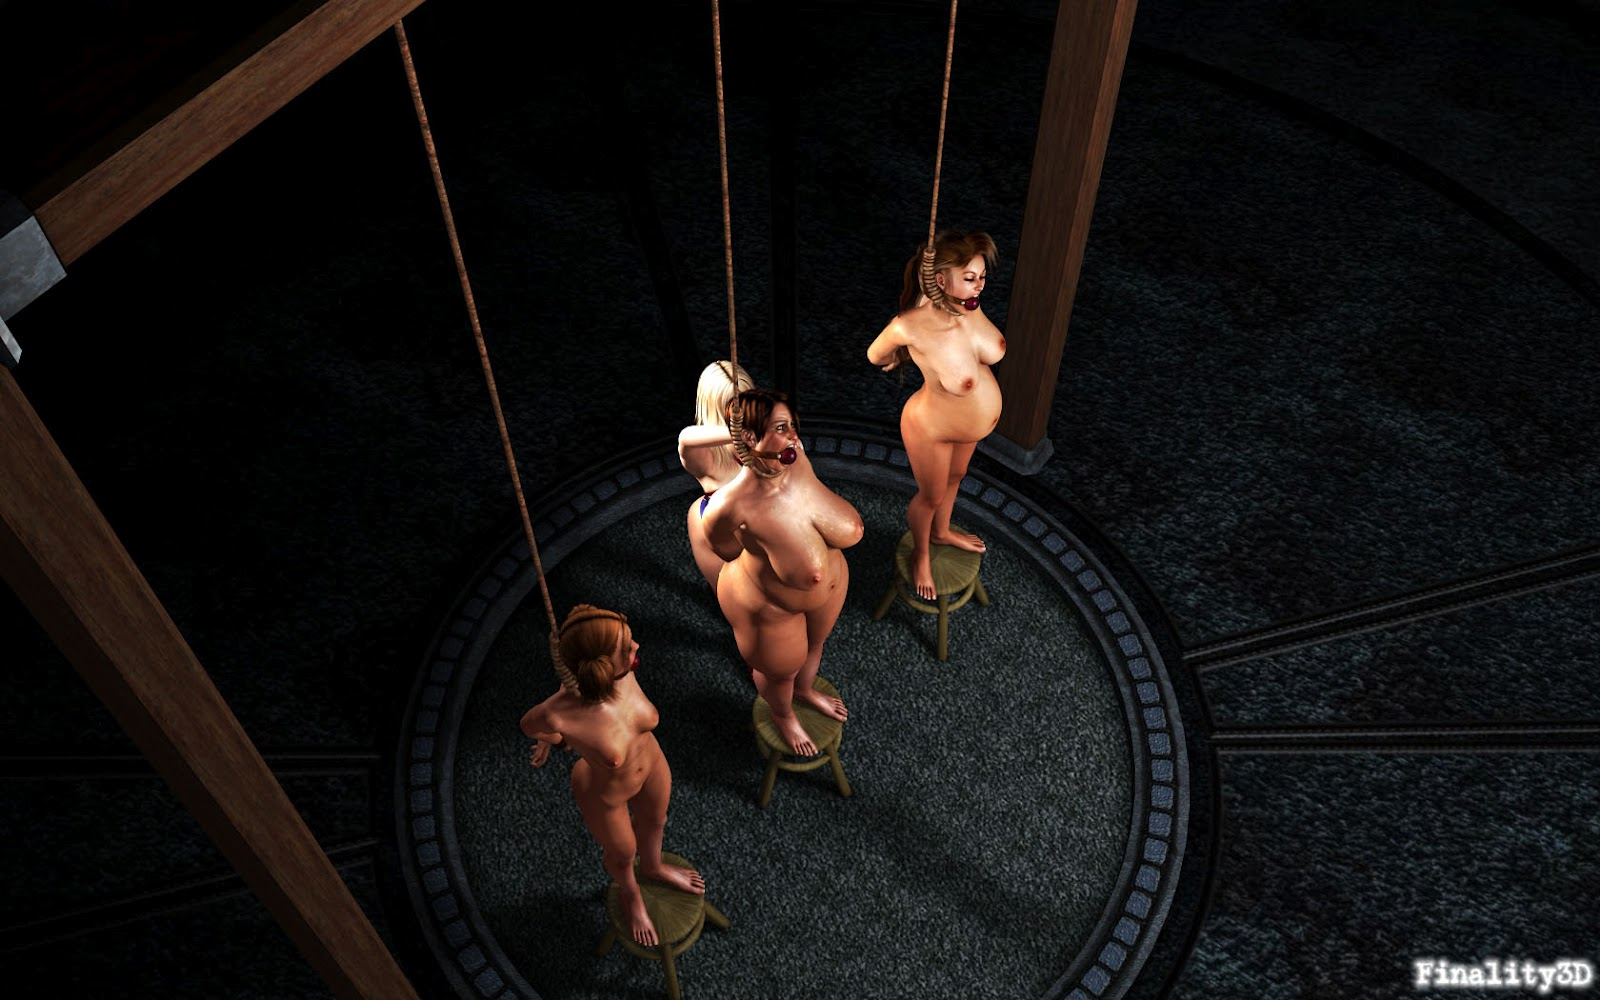 Execution erotic fantasy sex clips